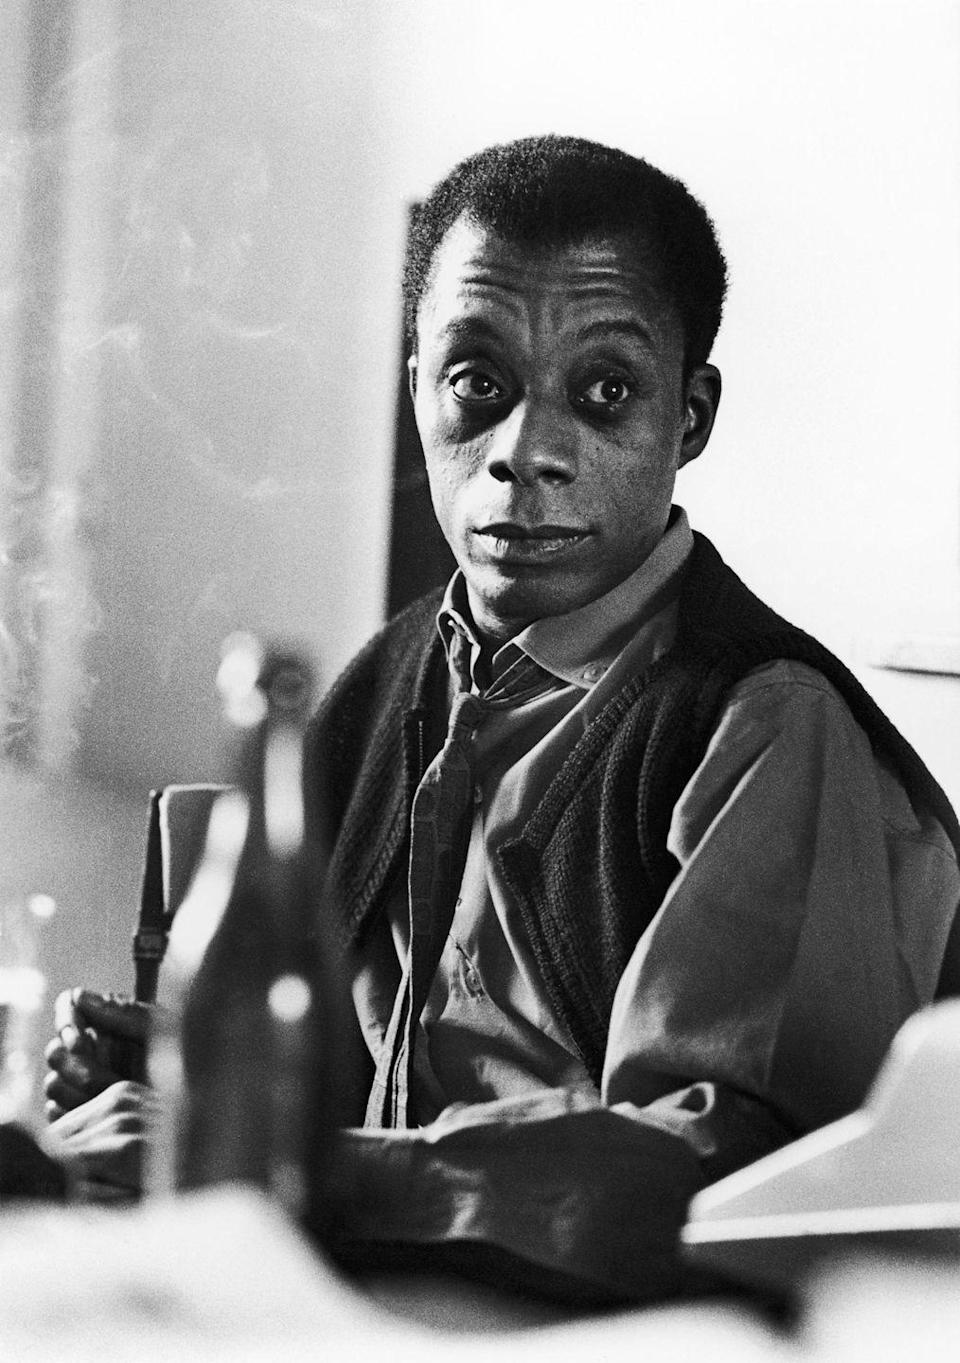 """<p>Baldwin is one of the greatest American writers of all time (and a <a href=""""https://www.esquire.com/author/8588/james-baldwin/"""" rel=""""nofollow noopener"""" target=""""_blank"""" data-ylk=""""slk:frequent Esquire contributor"""" class=""""link rapid-noclick-resp"""">frequent Esquire contributor</a>) who, a year before turning 40, was on the cover of <em>Time</em> magazine. </p>"""